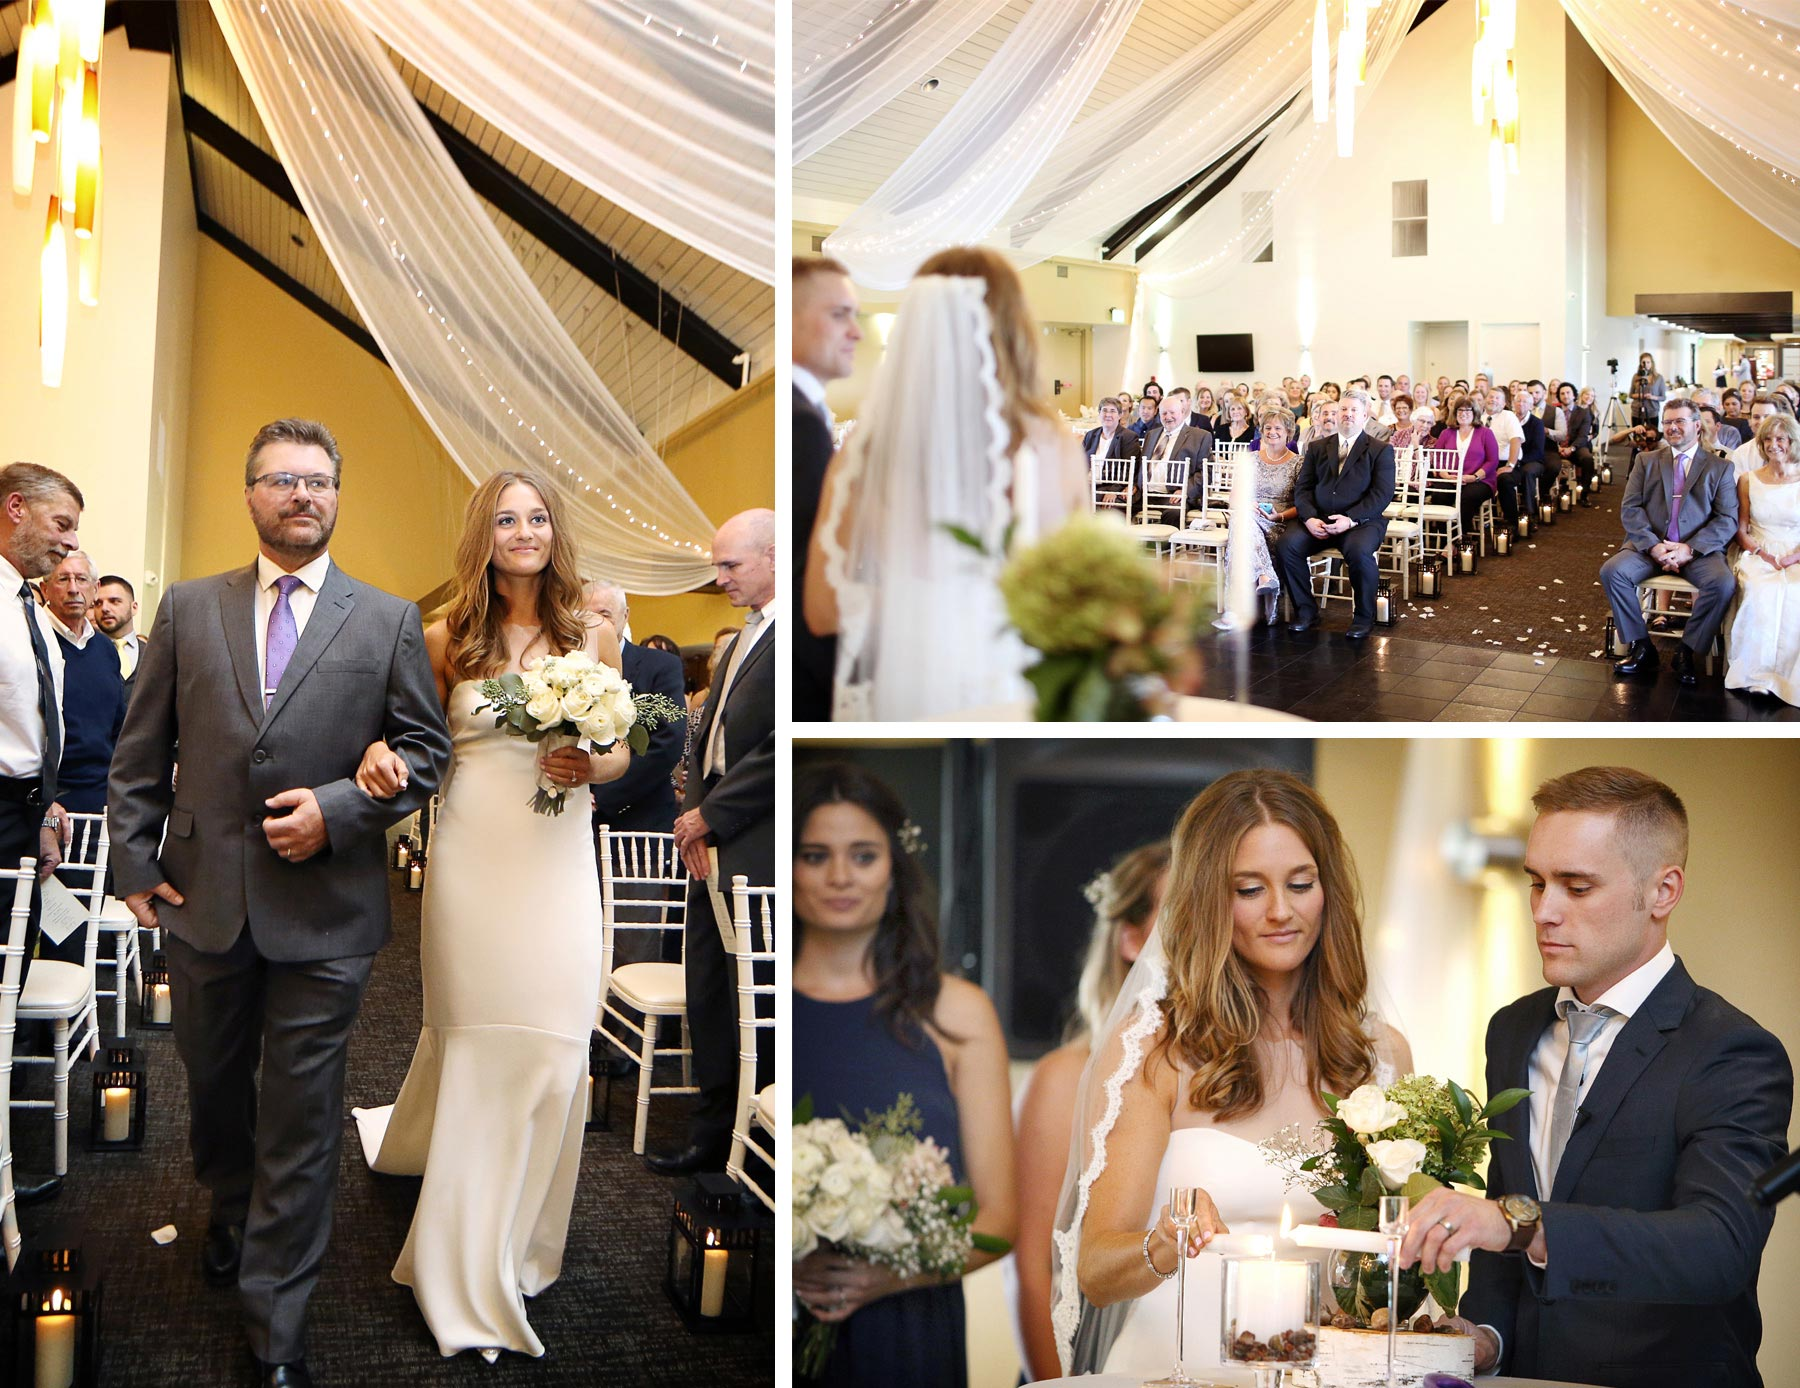 17-Dellwood-Minnesota-Wedding-Photographer-by-Andrew-Vick-Photography-Summer-Country-Club-Ceremony-Bride-Groom-Father-Parents-Candles-Vows-Sarah-and-Landon.jpg